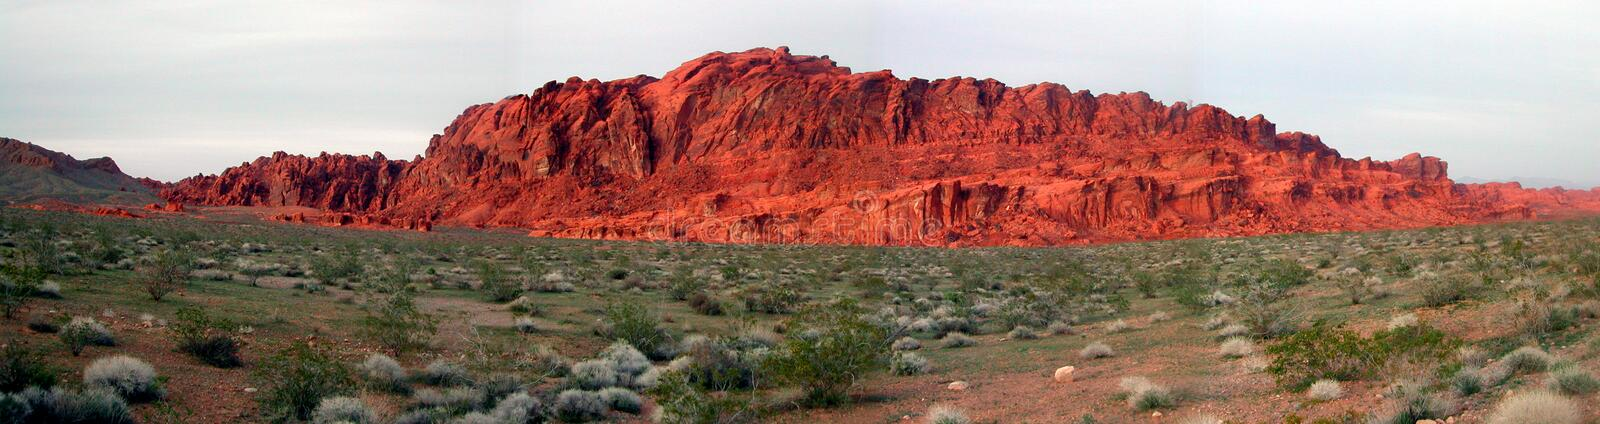 Panorama picture. Of the valley of fire stock images